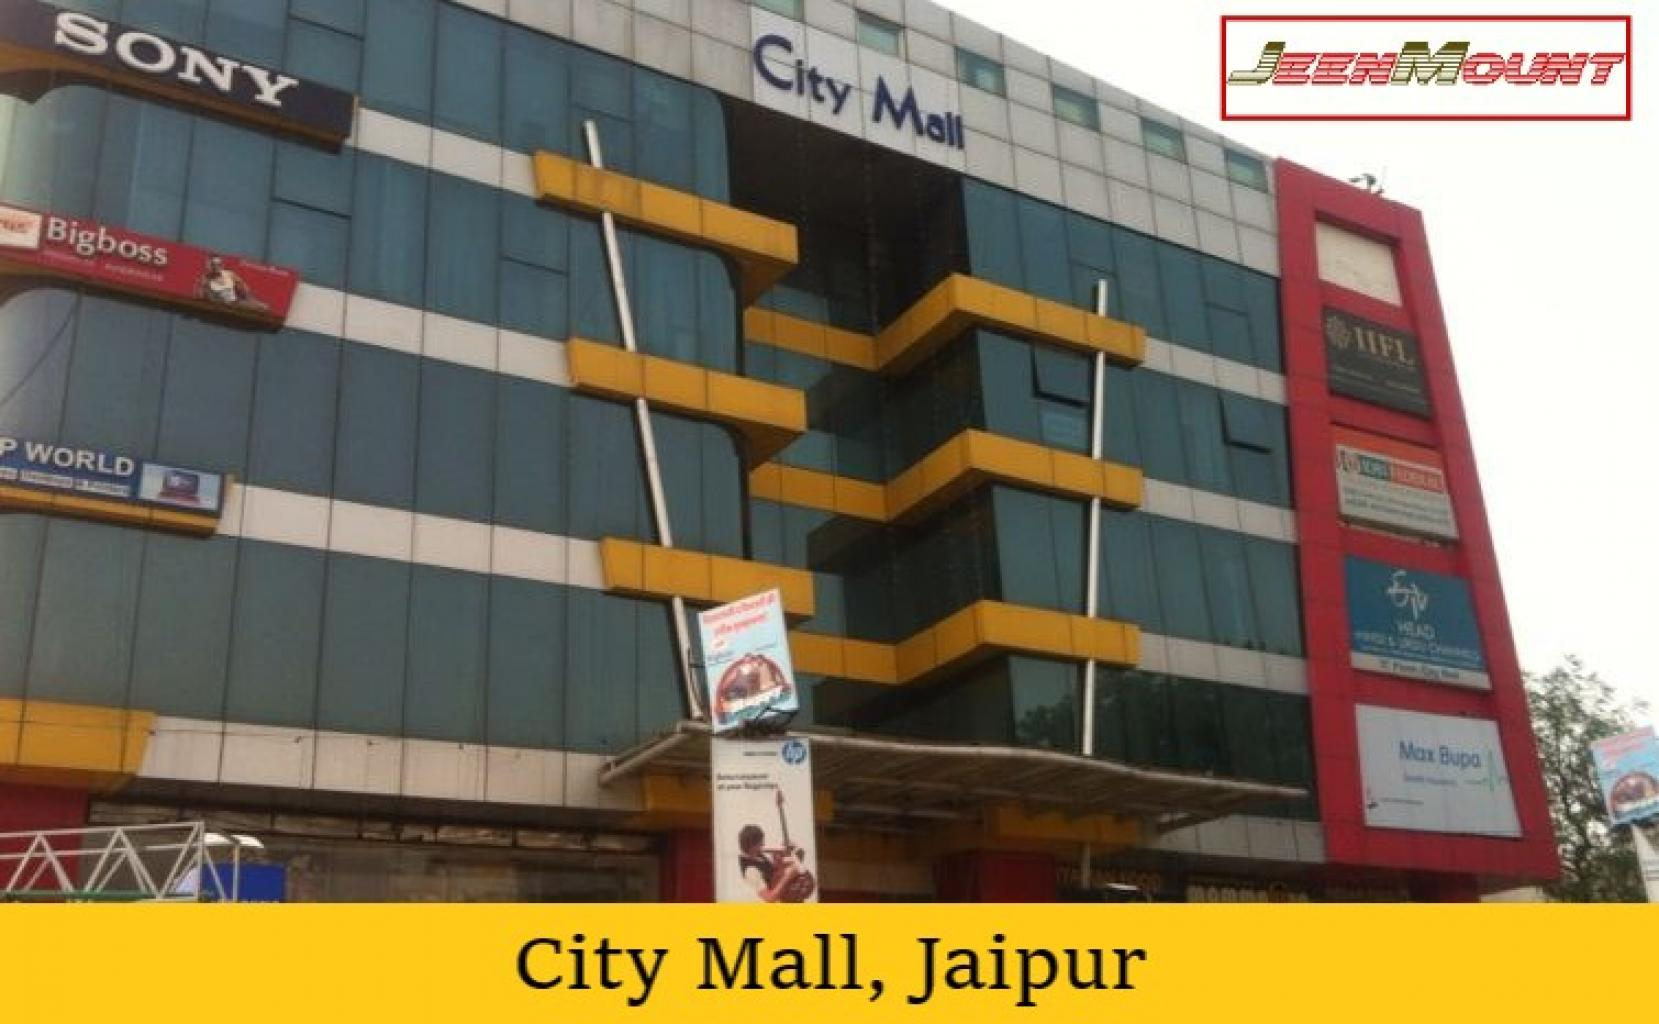 City Mall, Jaipur